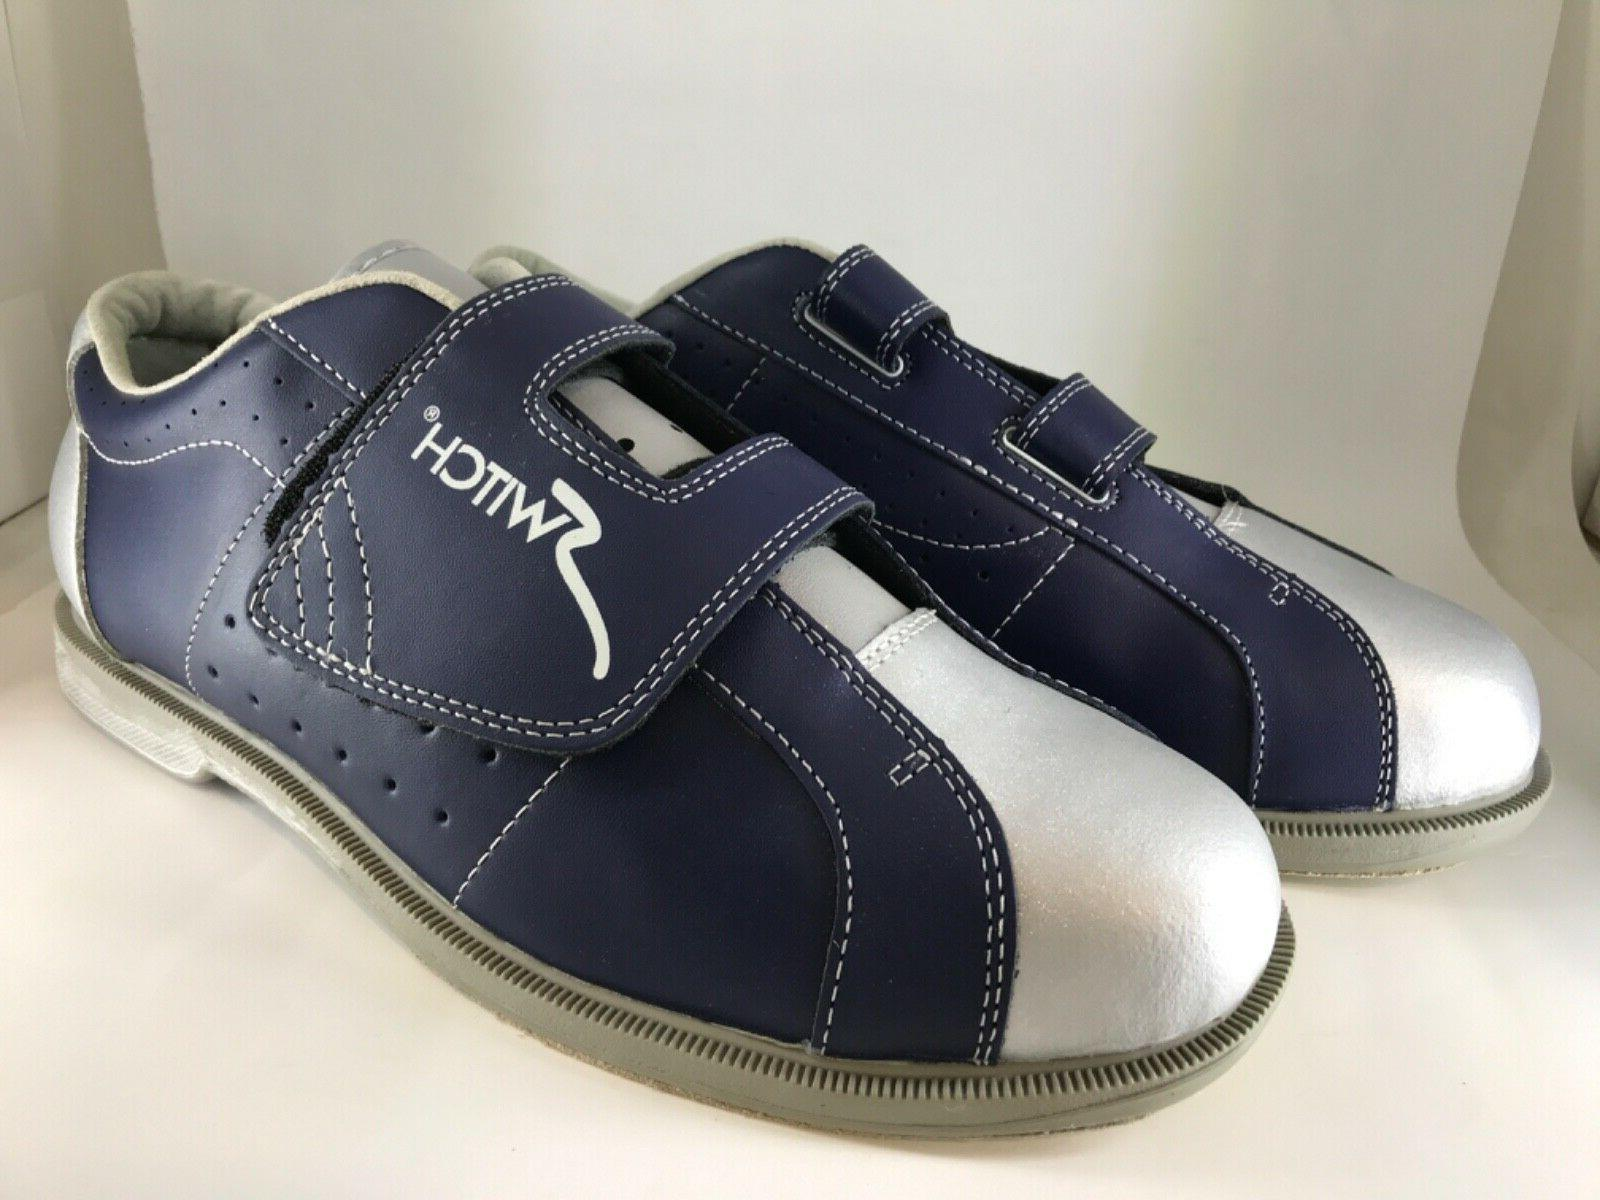 leather sole bowling shoes by size 12